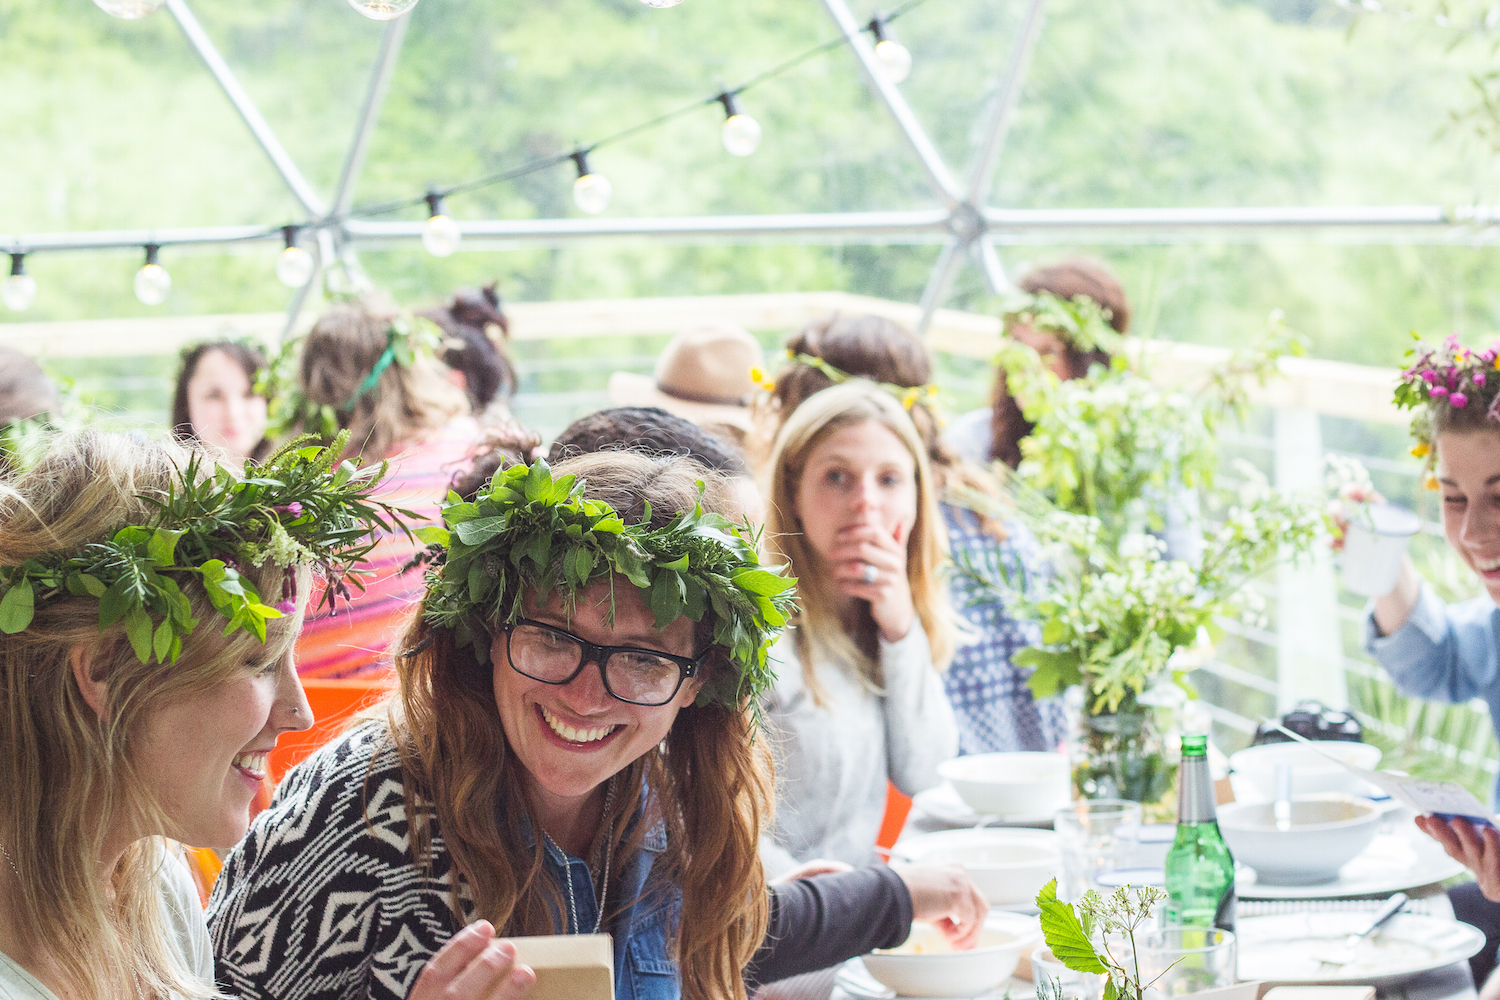 Sisterhood camp evening meal styled by Hannah Bullivant | Seeds and Stitches blog